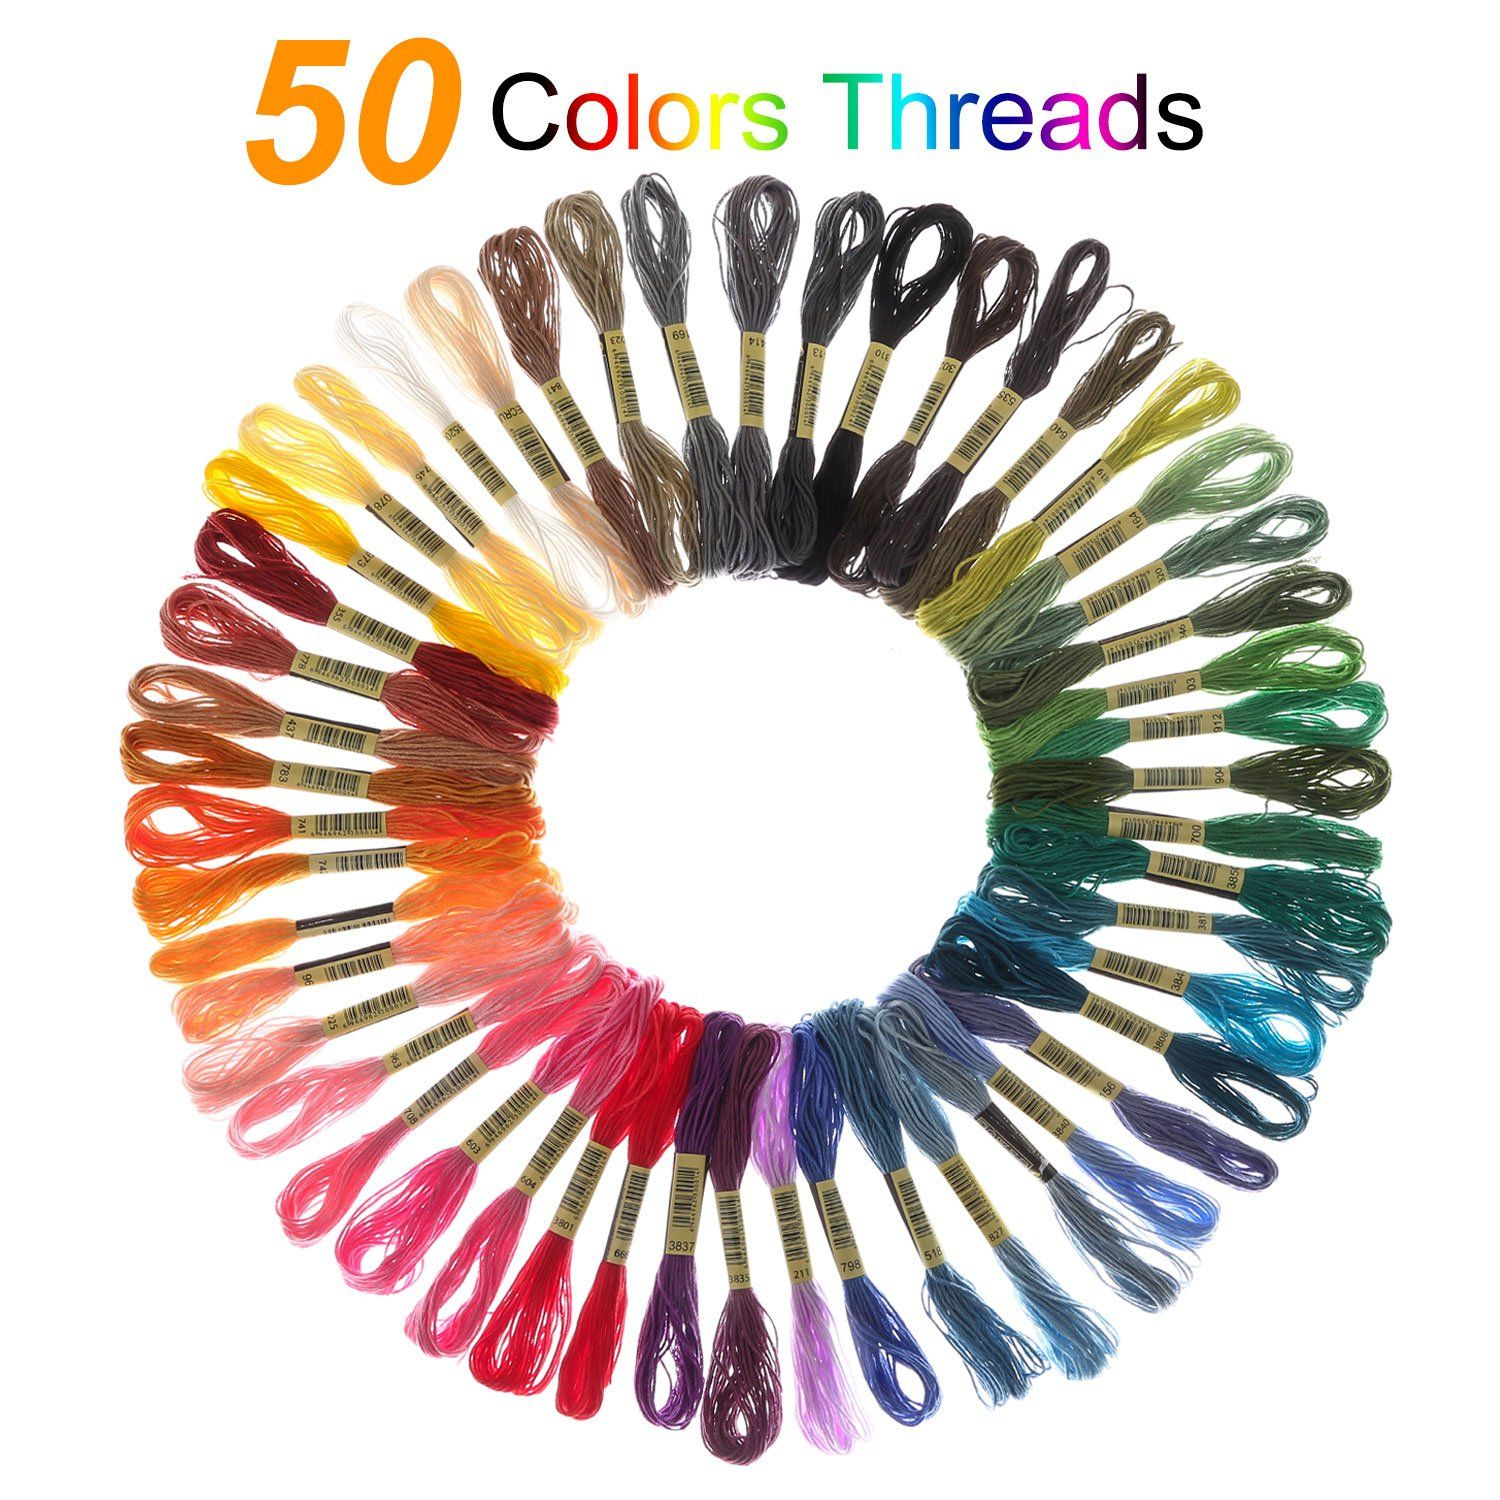 5 Bamboo Hoop Full Set Embroidery Cross Stitching Starter Kit ////50 Color Thread